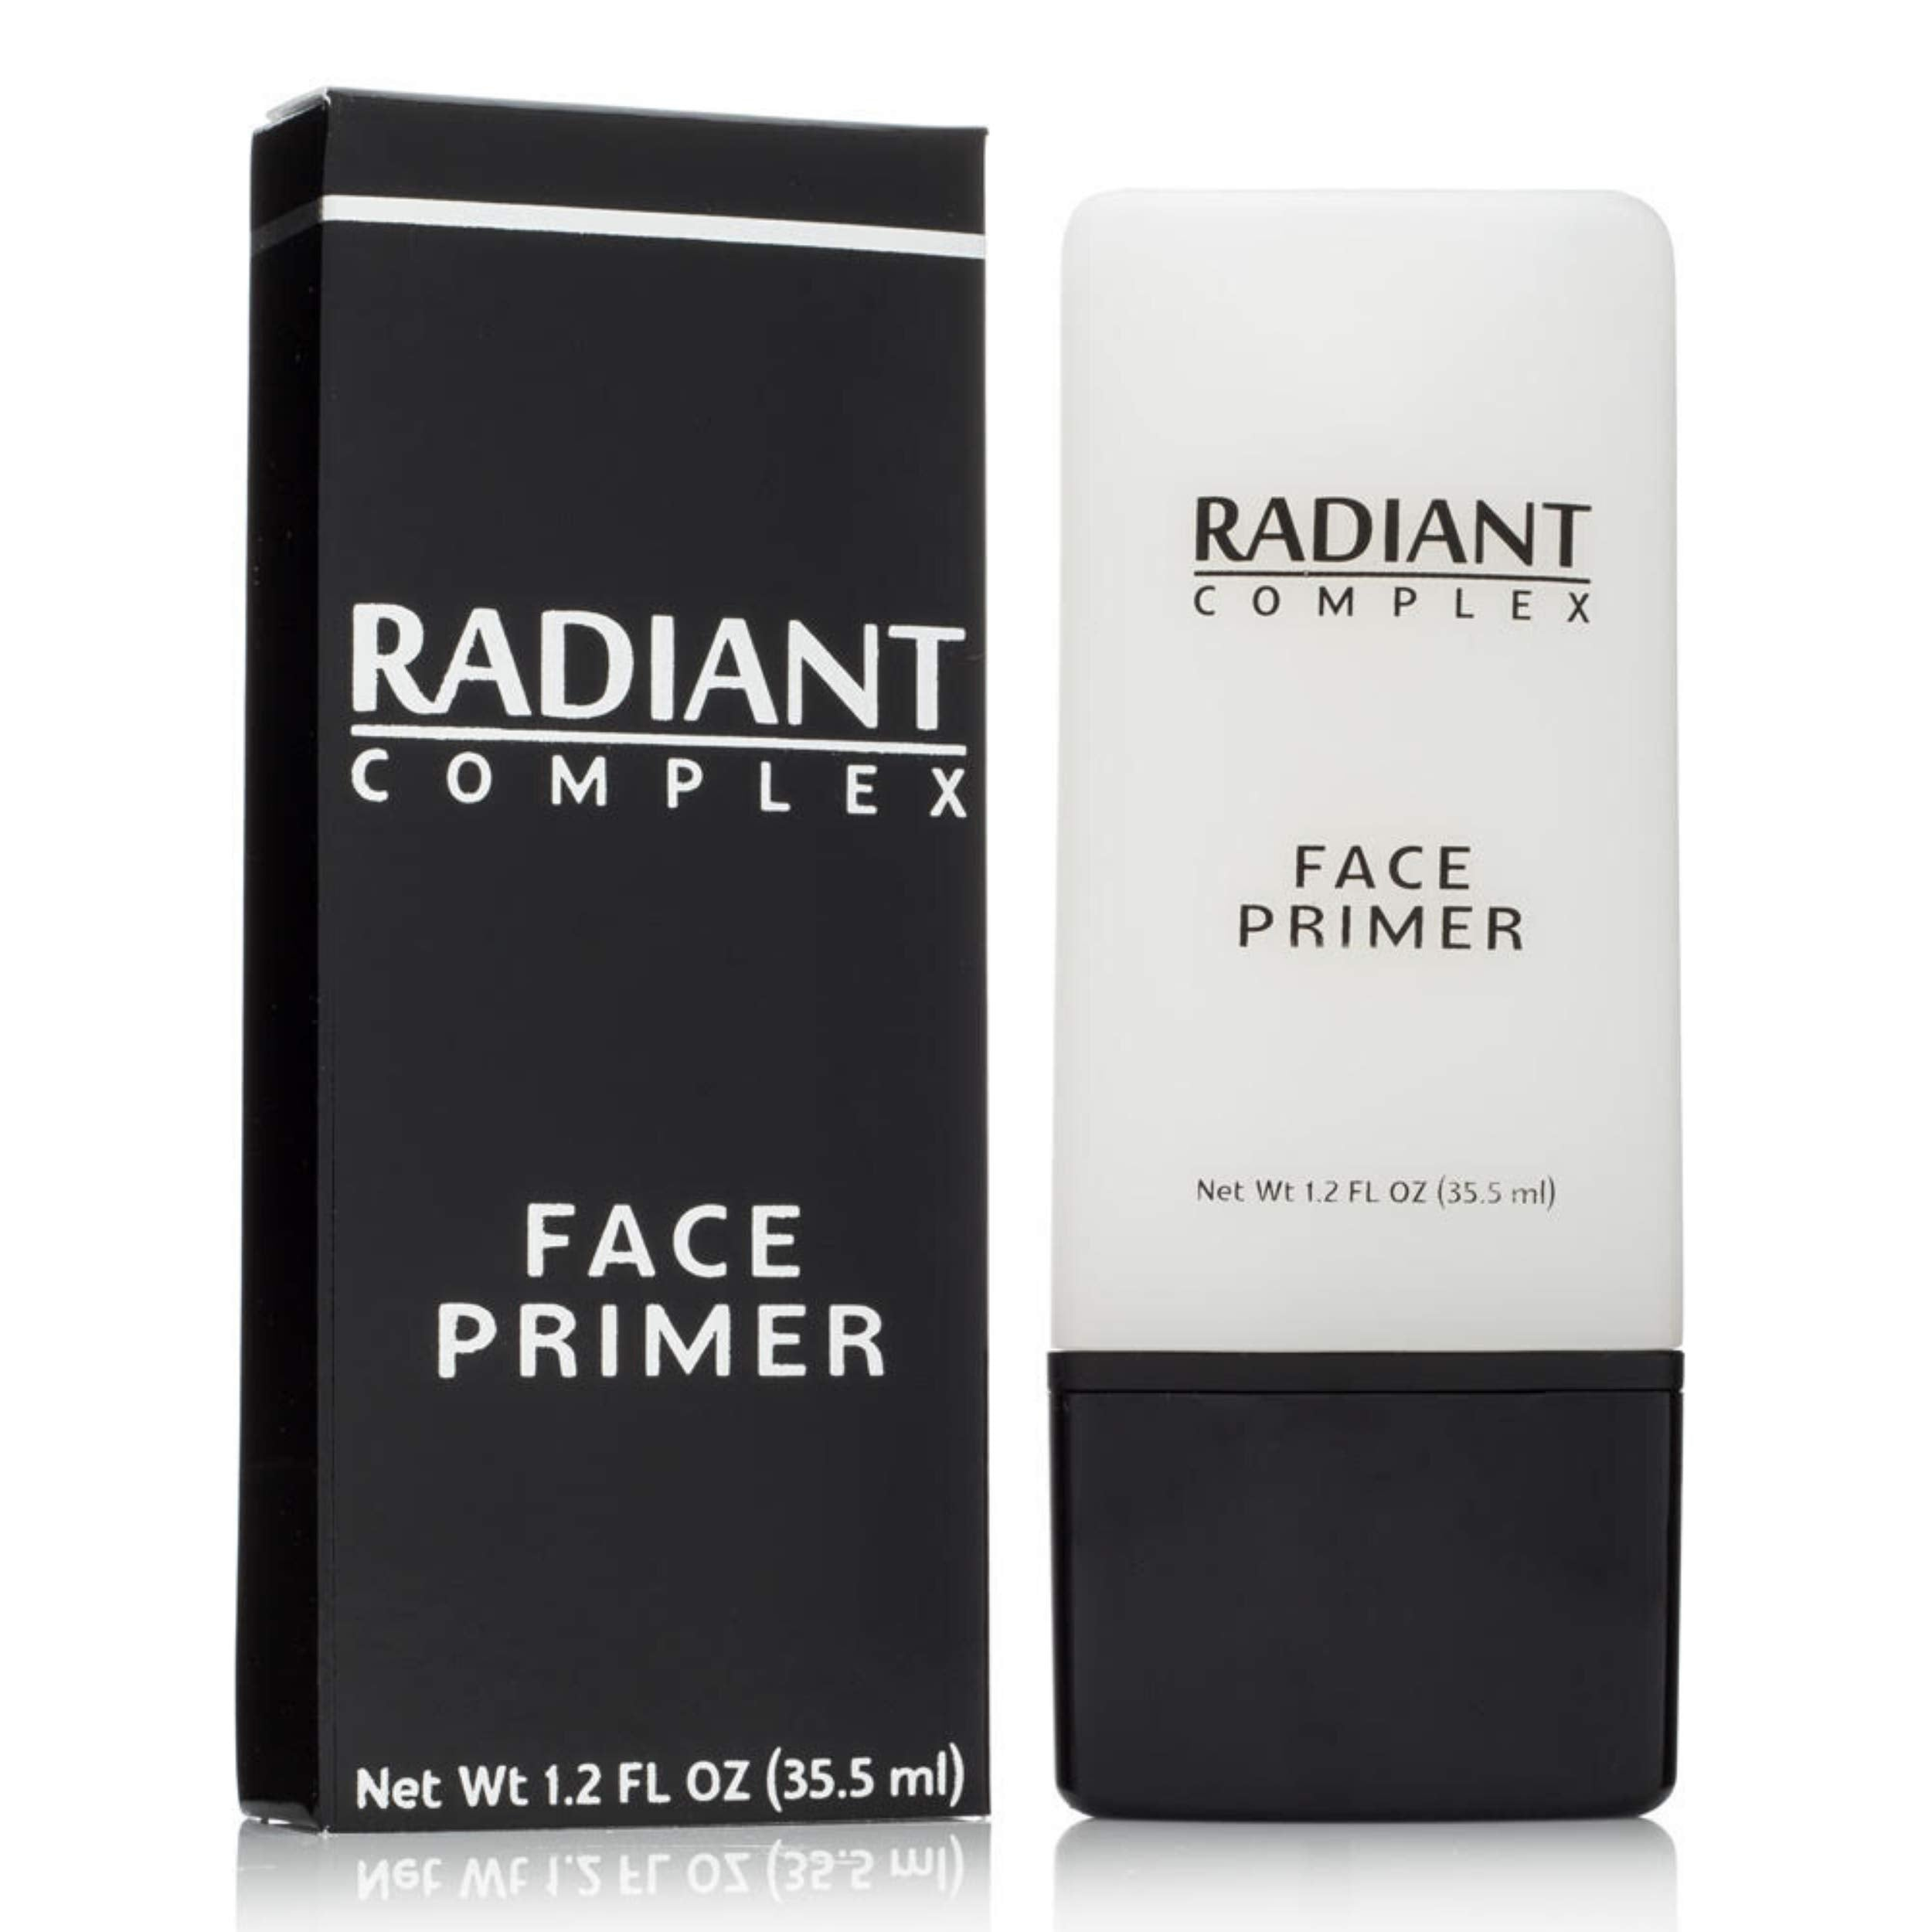 Best Makeup Base: Radiant Complex Face Primer and Pore Minimizer Transforms Your Skin into a Smooth Matte Canvas for Applying Foundation and Make Up, Hiding Fine Lines, Blemishes and Wrinkles 1.2 OZ